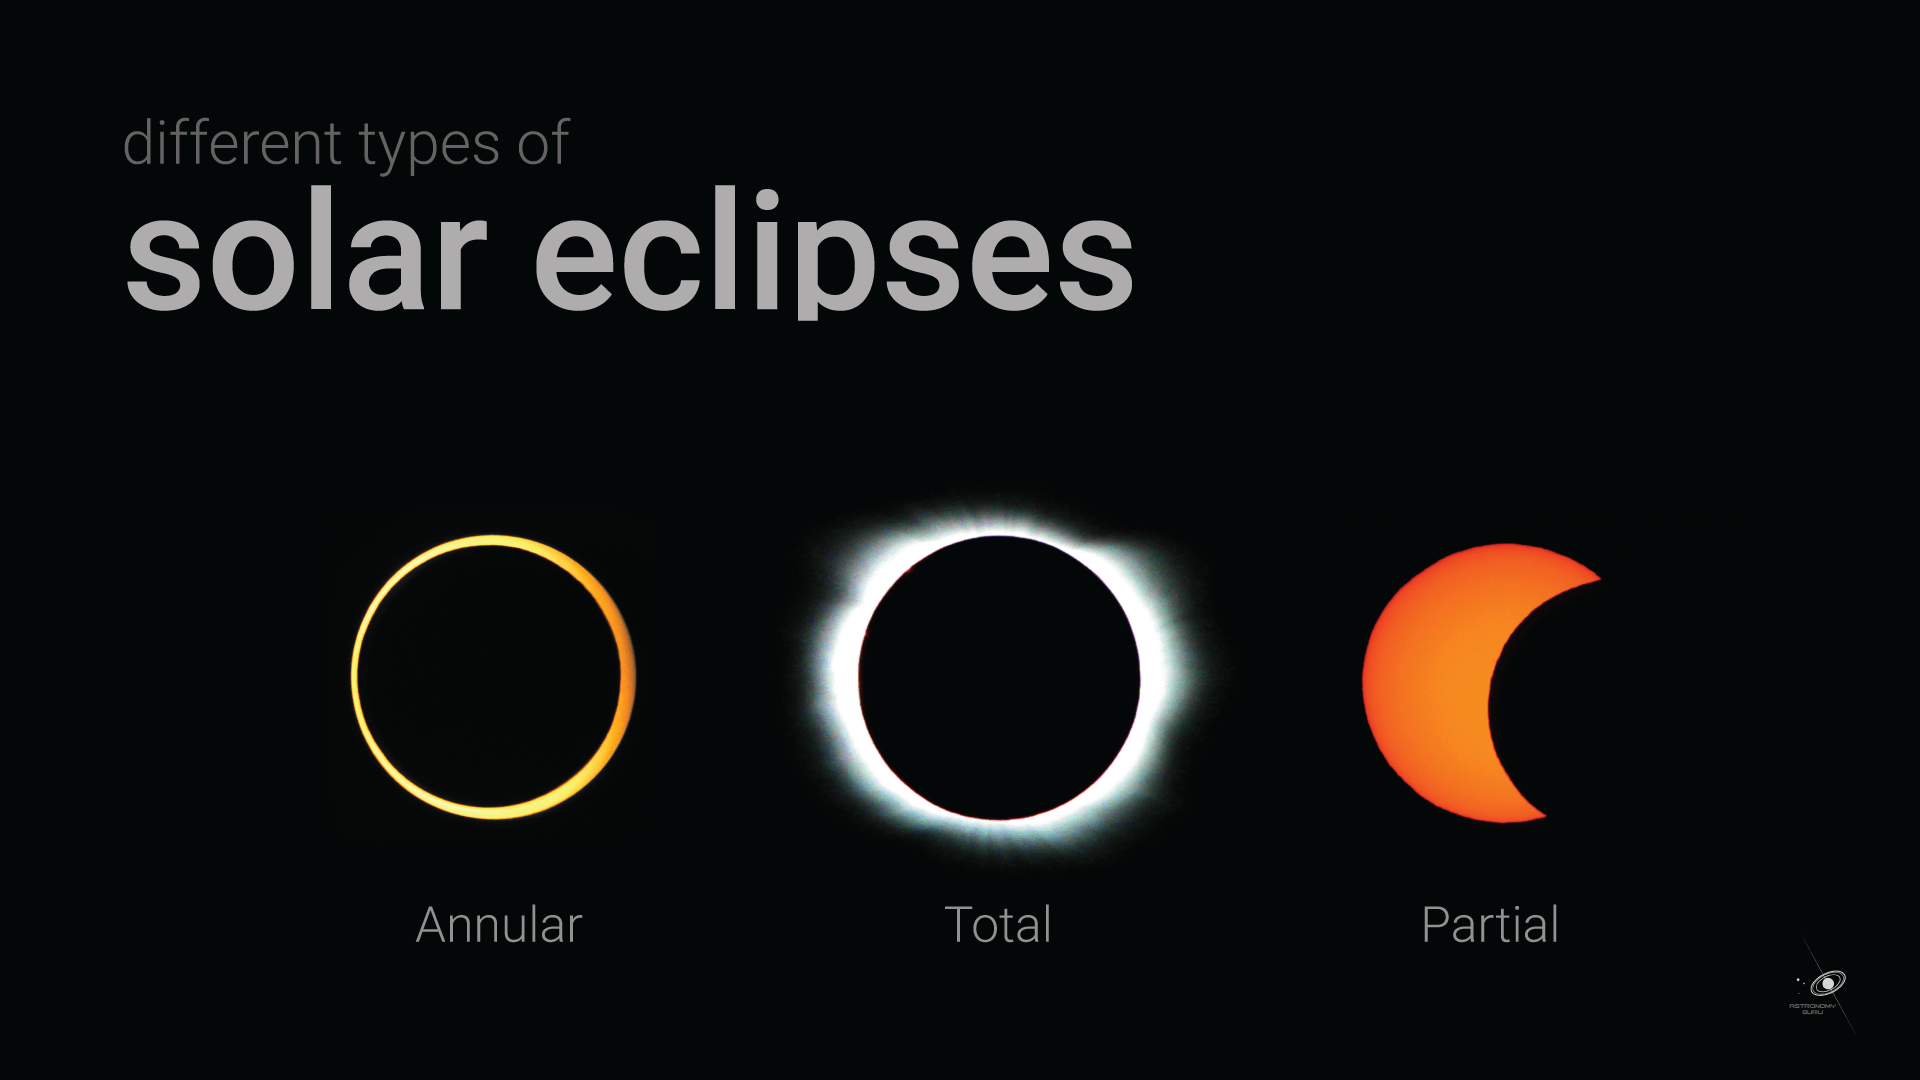 Partial vs. Annular vs. Total Eclipse Fact